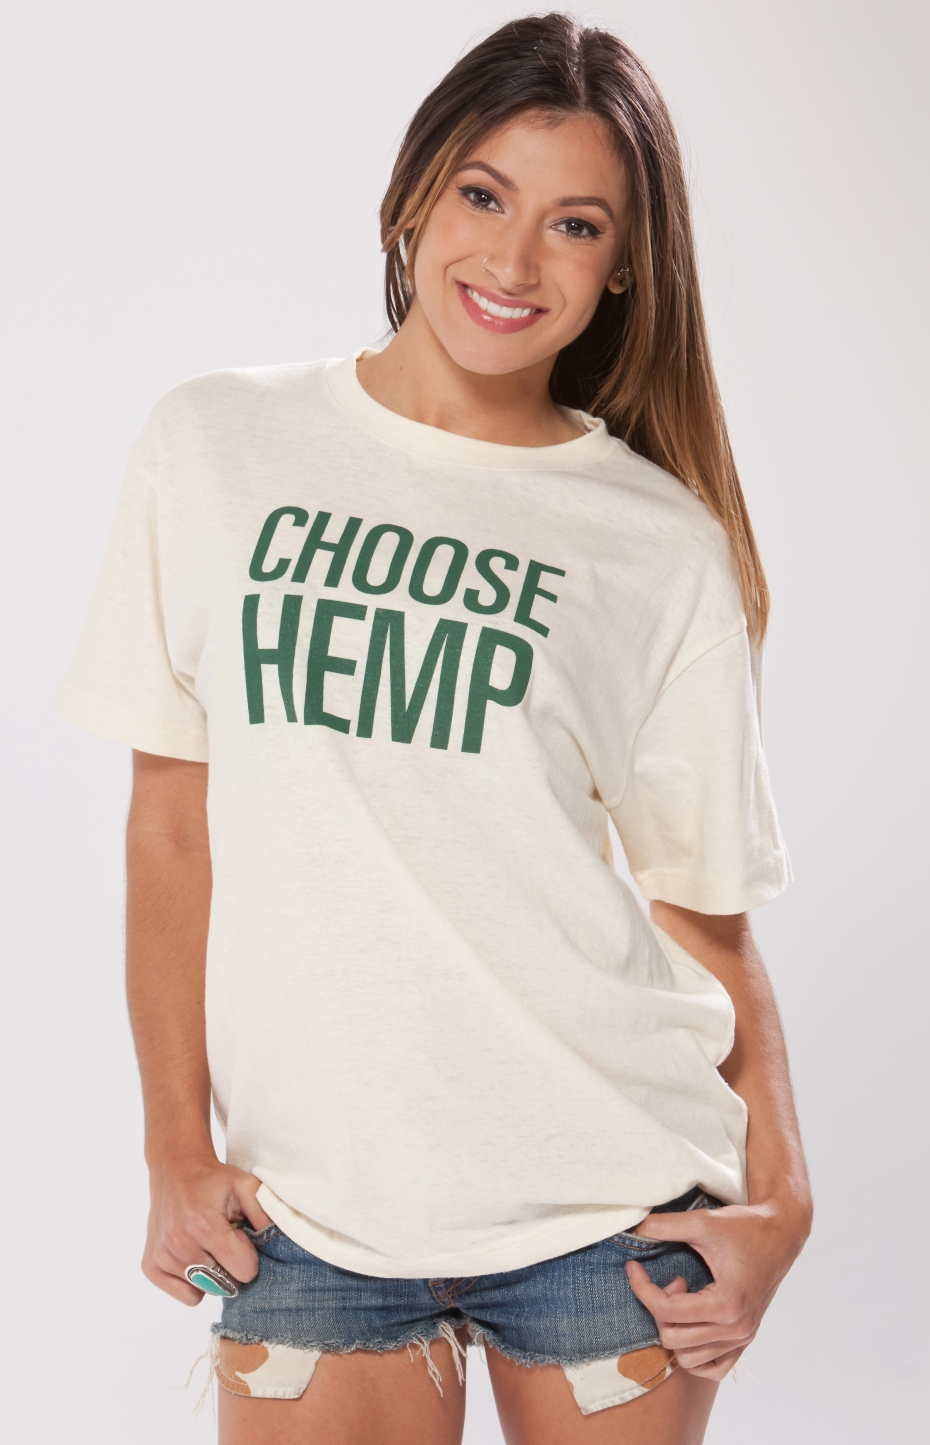 Choose Hemp!